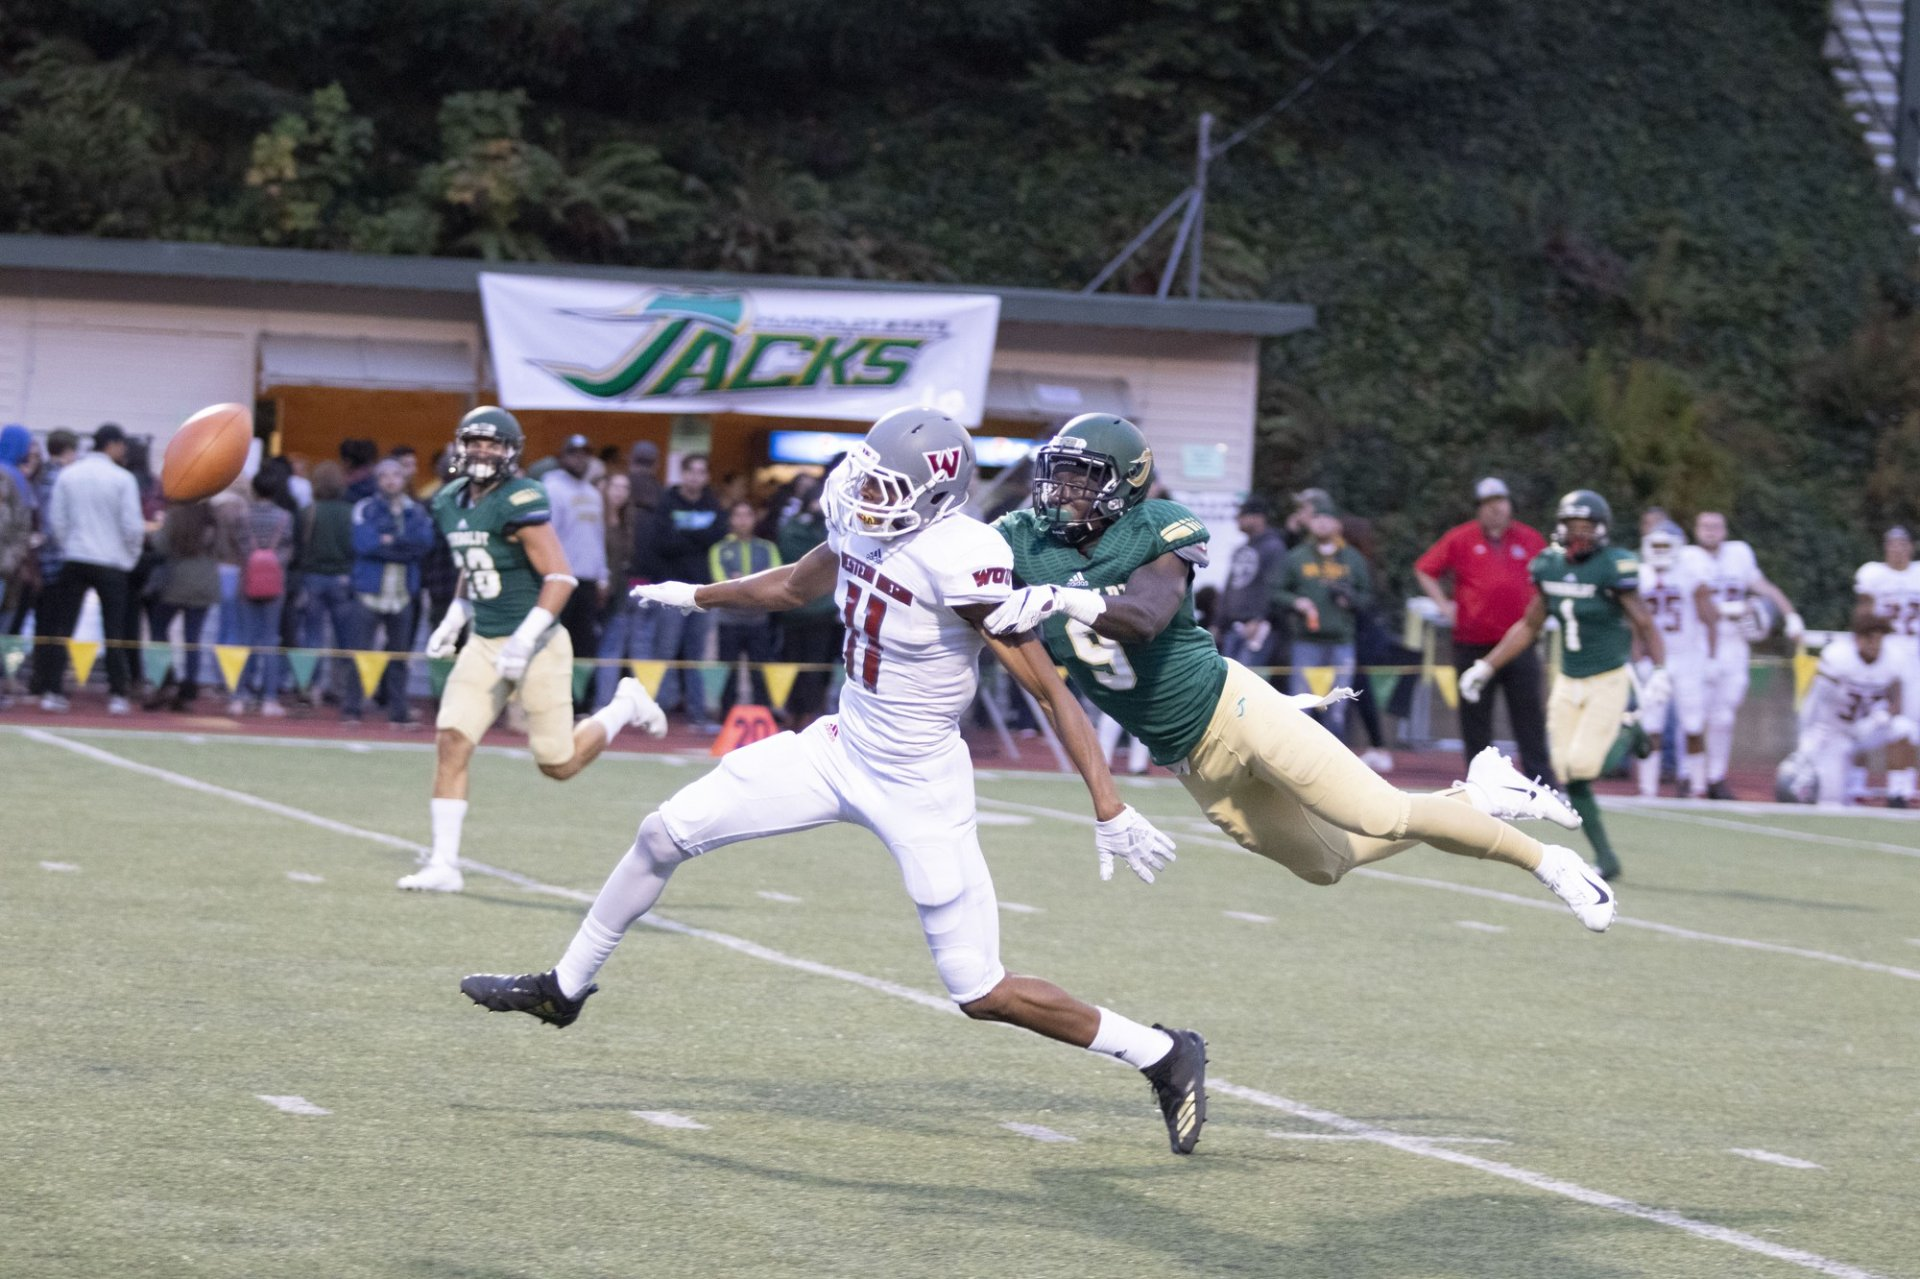 Defensive back number nine Ereon Nash disrupts the Western Oregon receiver leading to an incomplete pass at the Redwood Bowl on Oct. 27. | Photo by Matt Shiffler